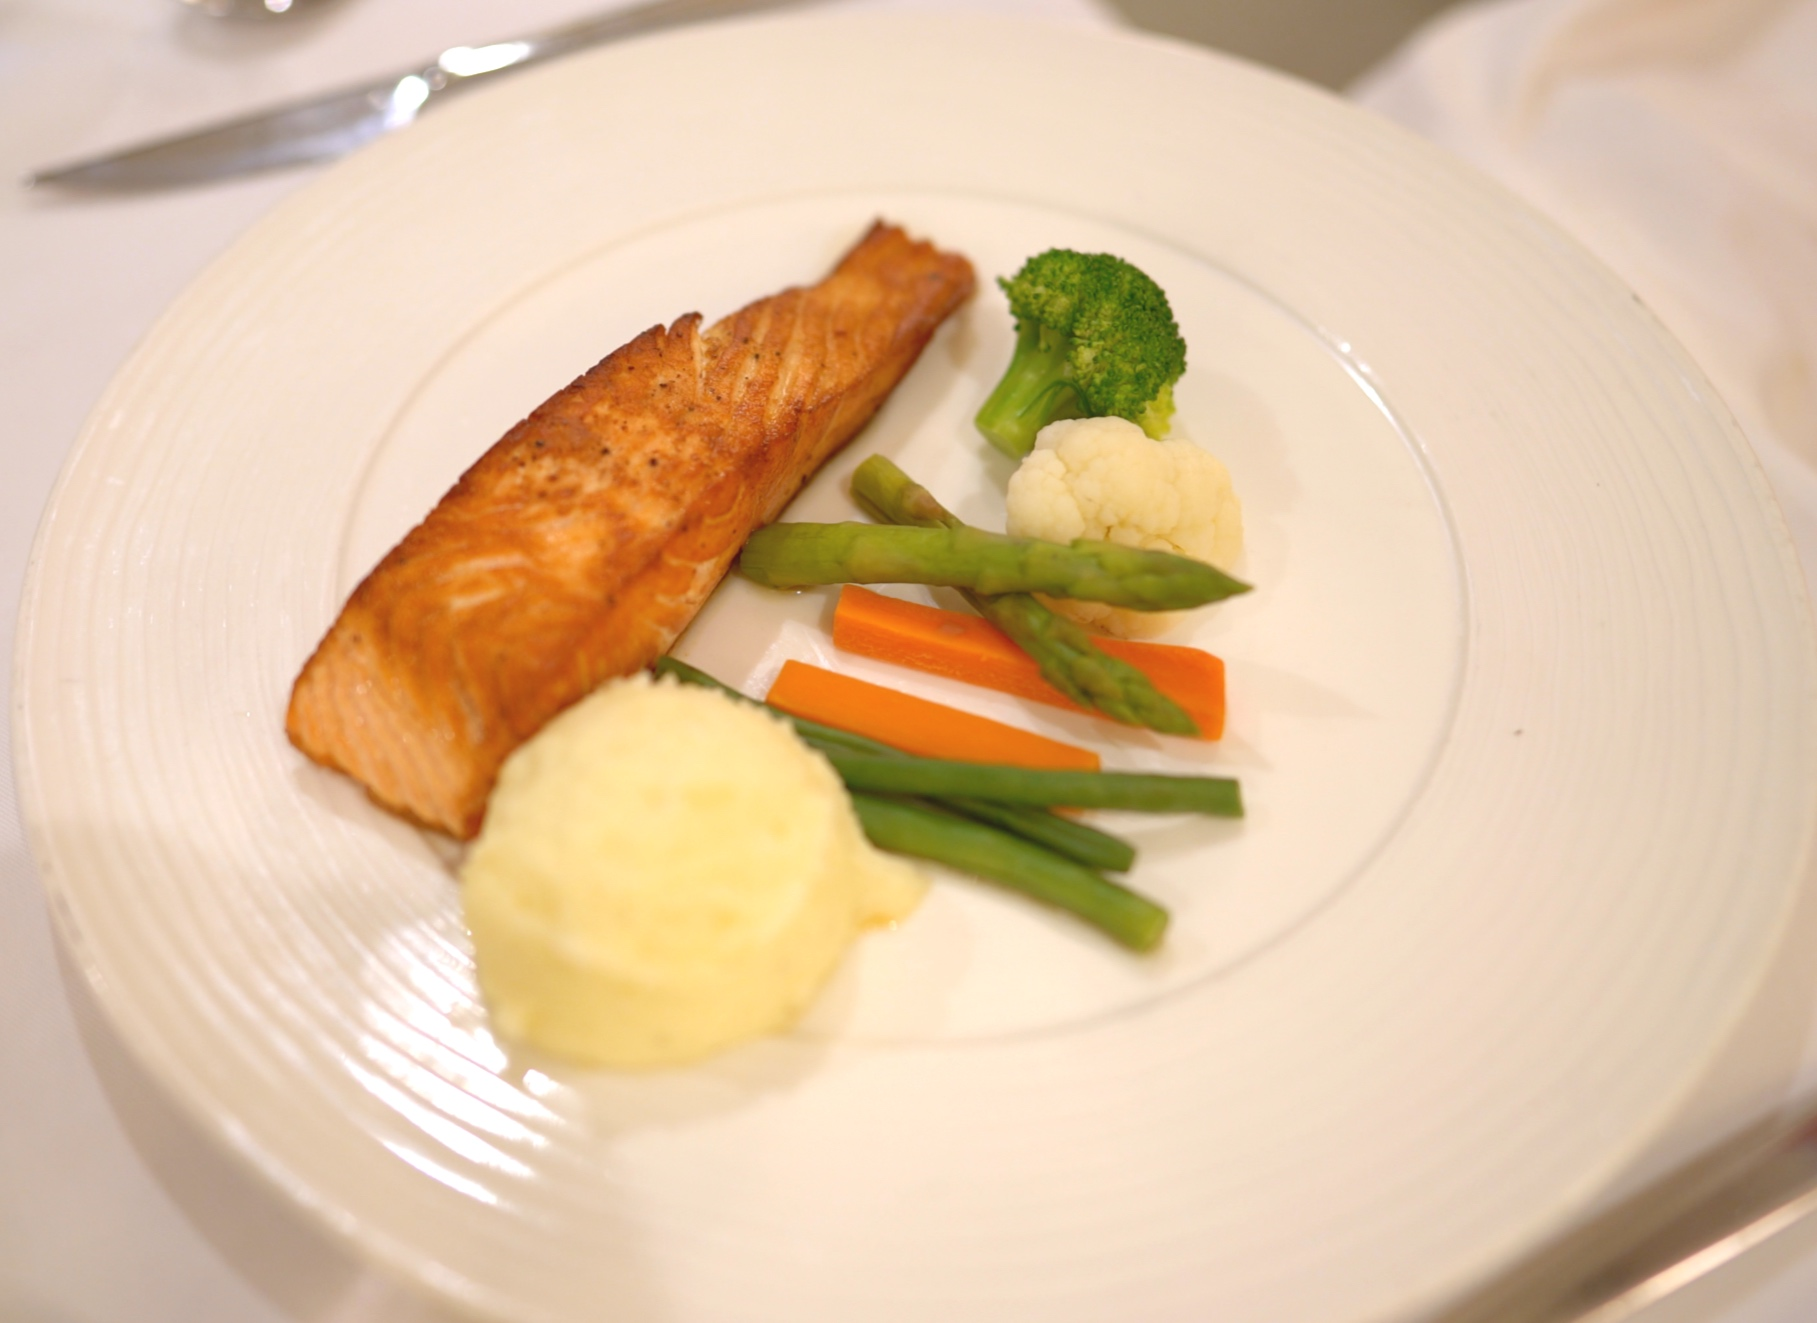 In-suite grilled salmon and vegetables.